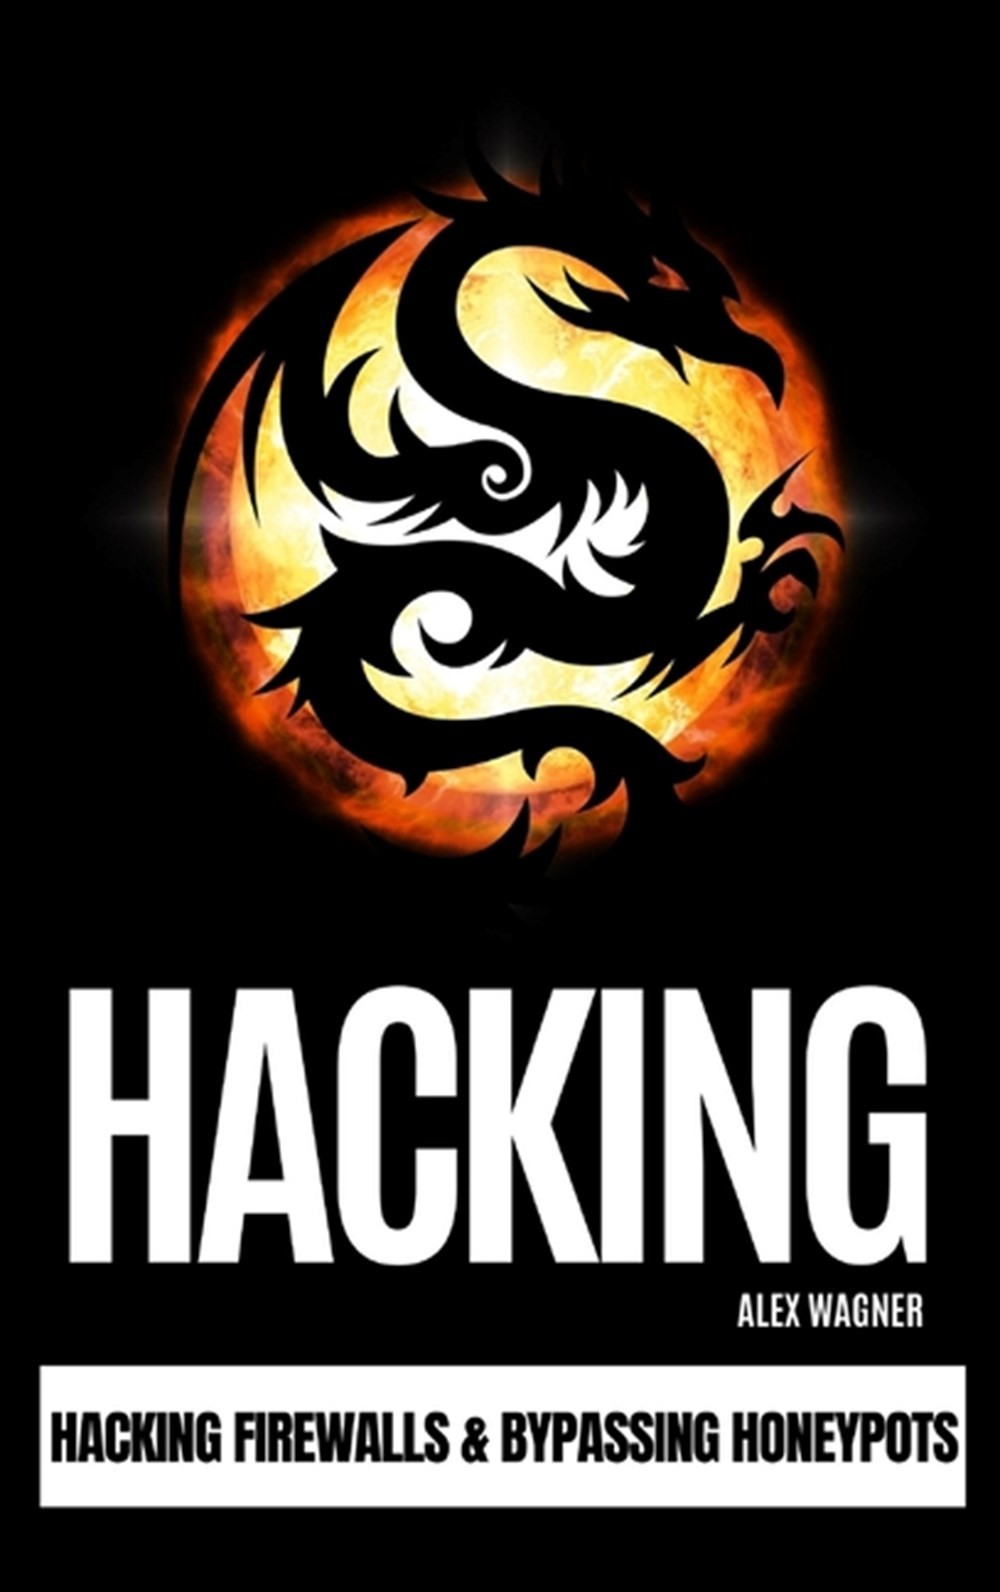 Hacking Hacking Firewalls & Bypassing Honeypots